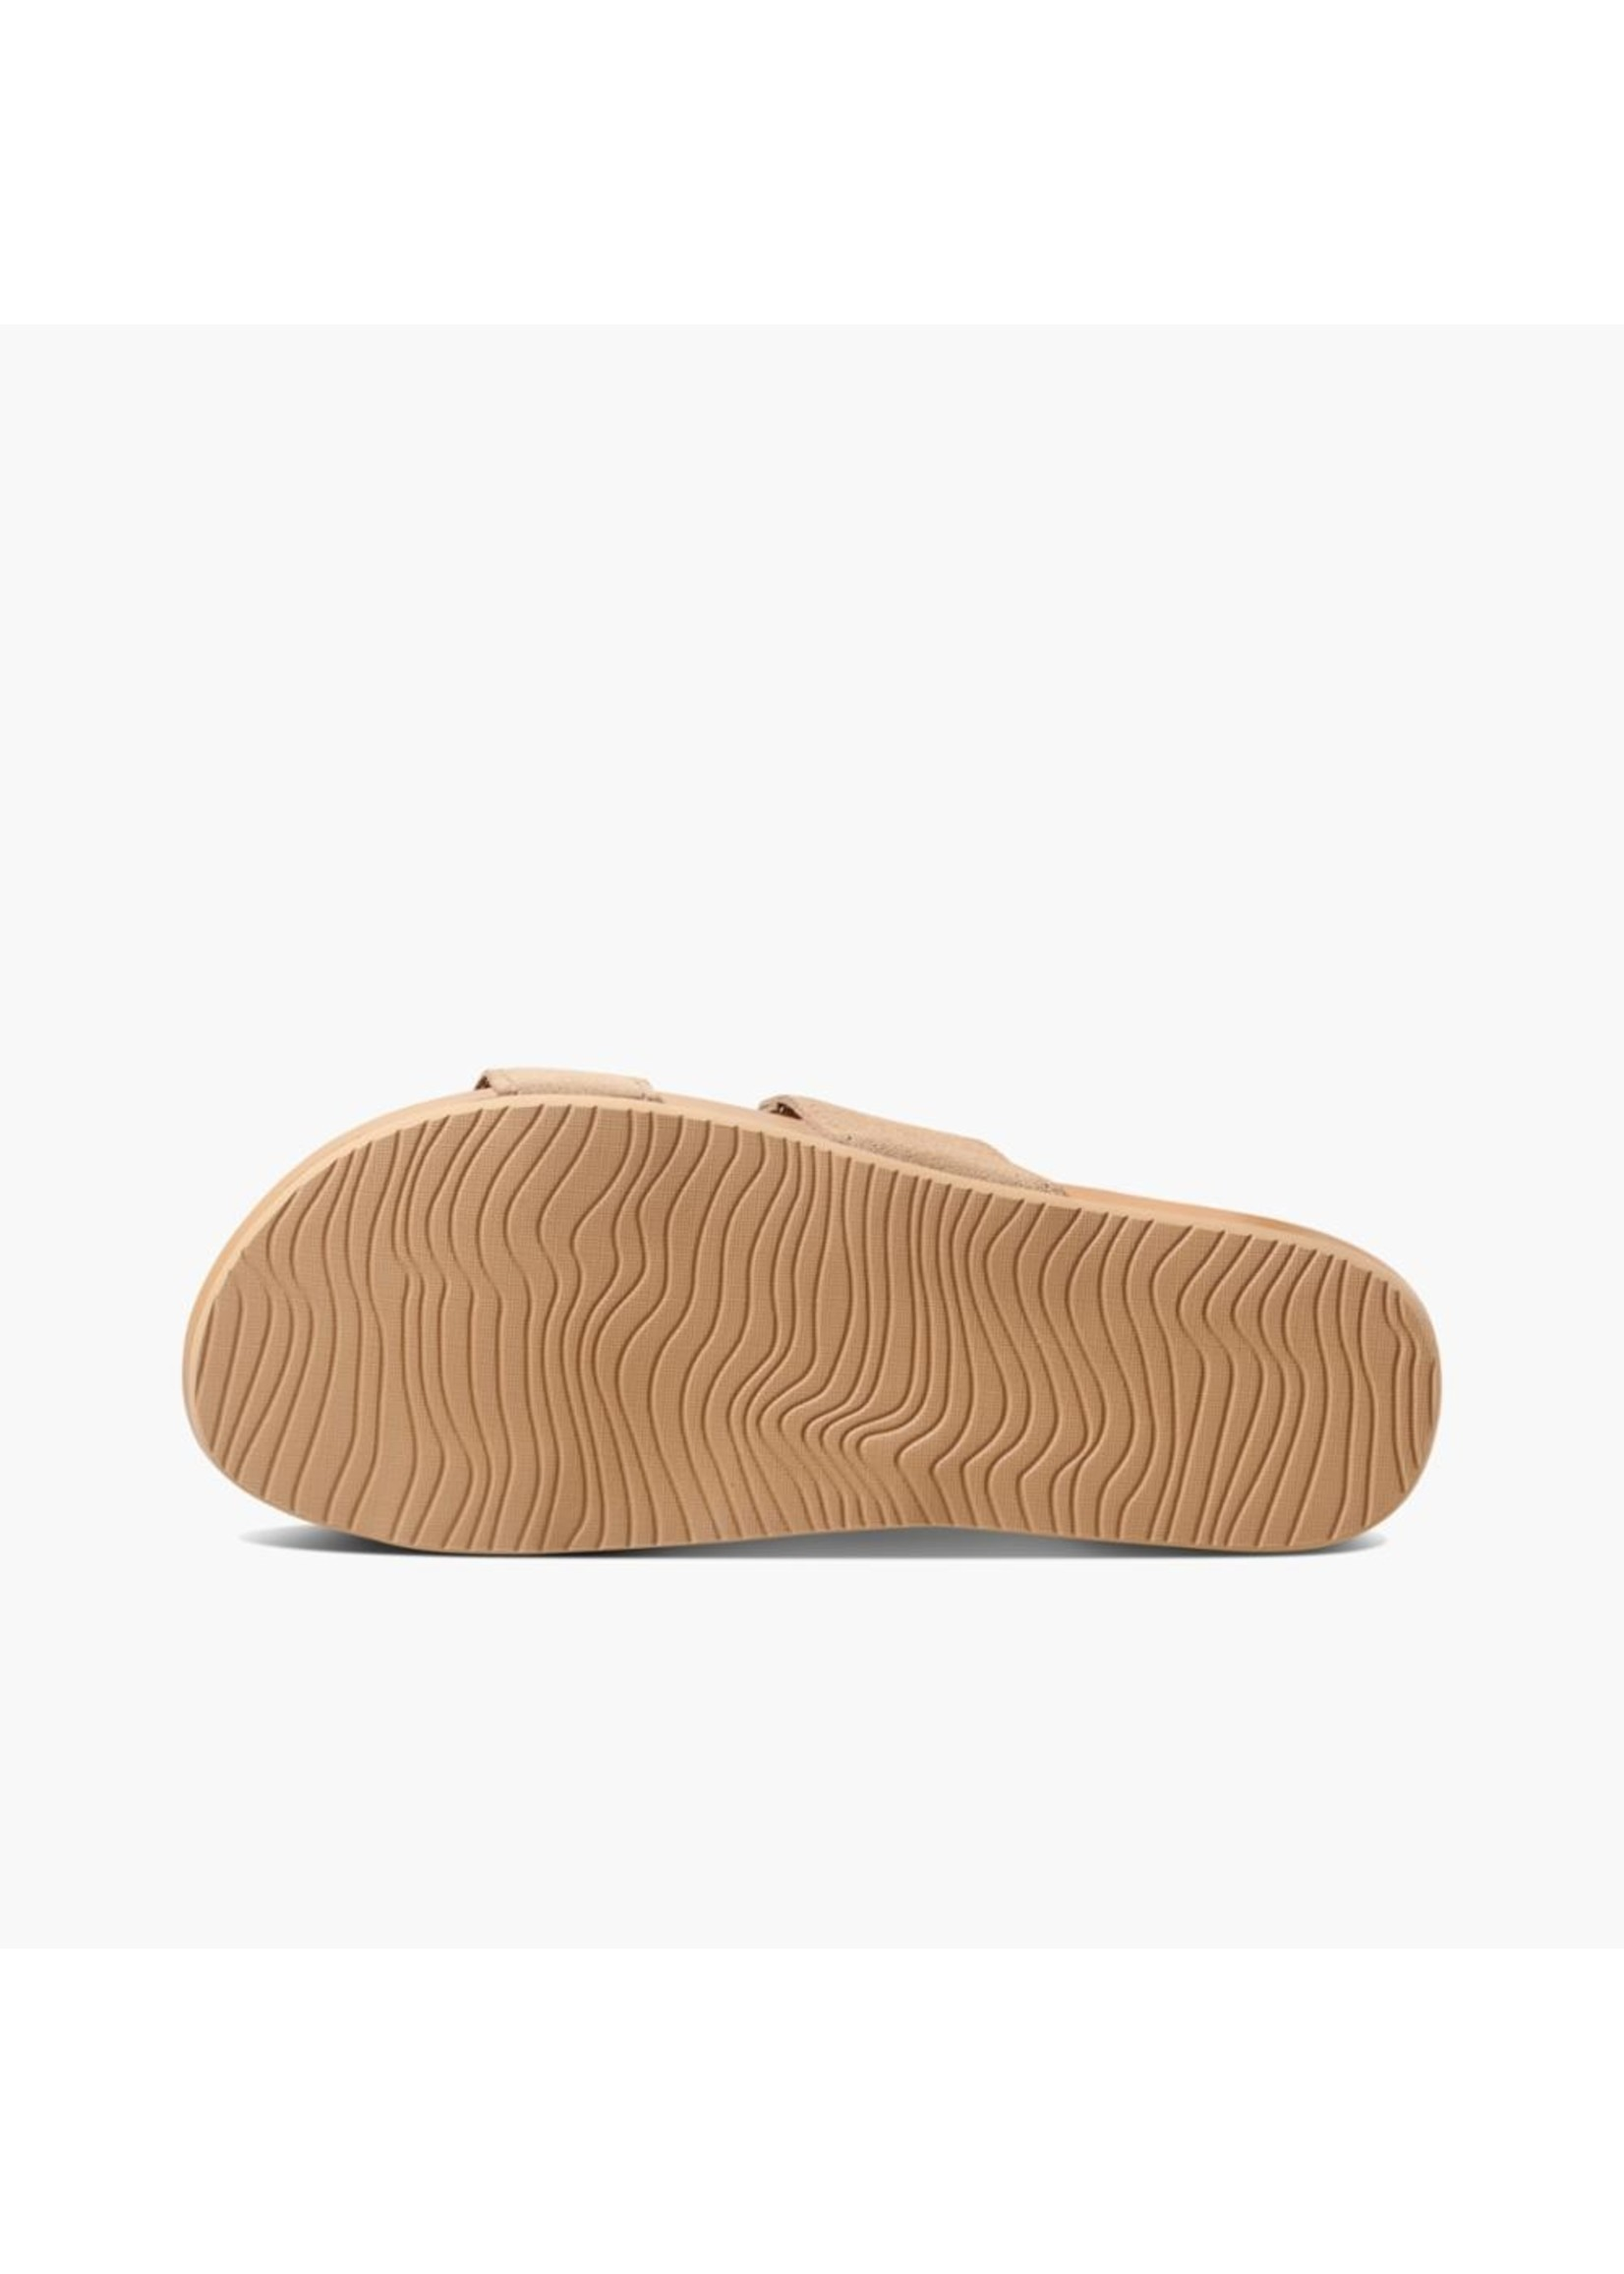 Reef Cushion Bounce Vista Suede